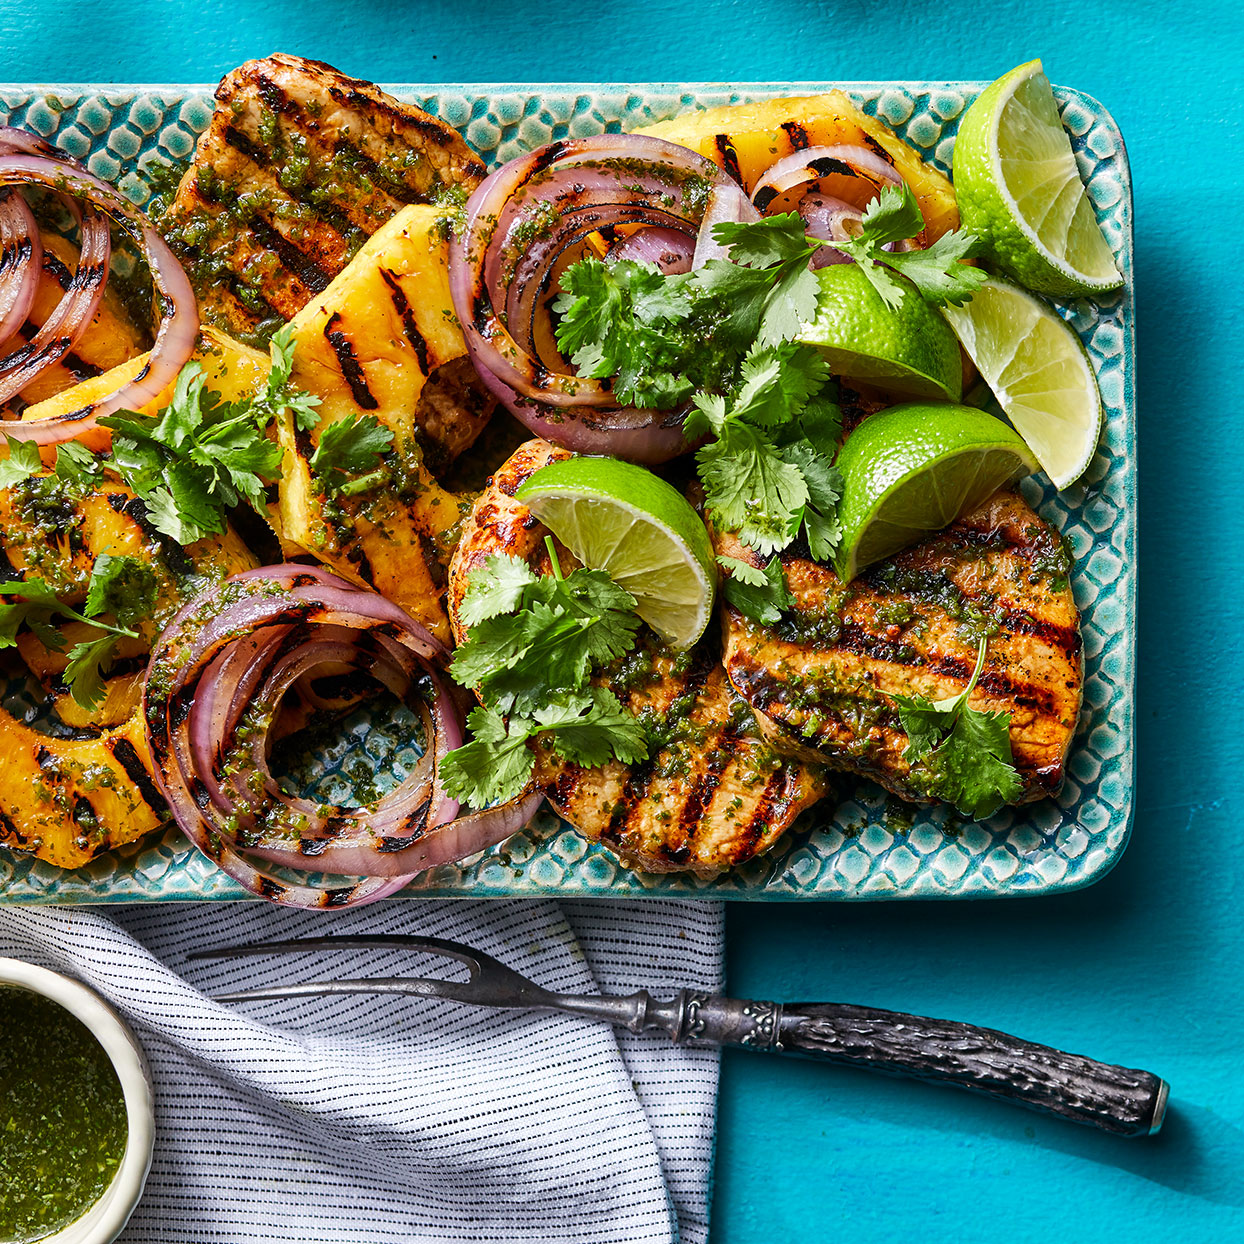 Never grilled pineapple? Get ready to be wowed. It caramelizes beautifully for a deeper flavor. Plus it's a totally tasty match with a grilled pork chop, cilantro and a little heat from serranos.